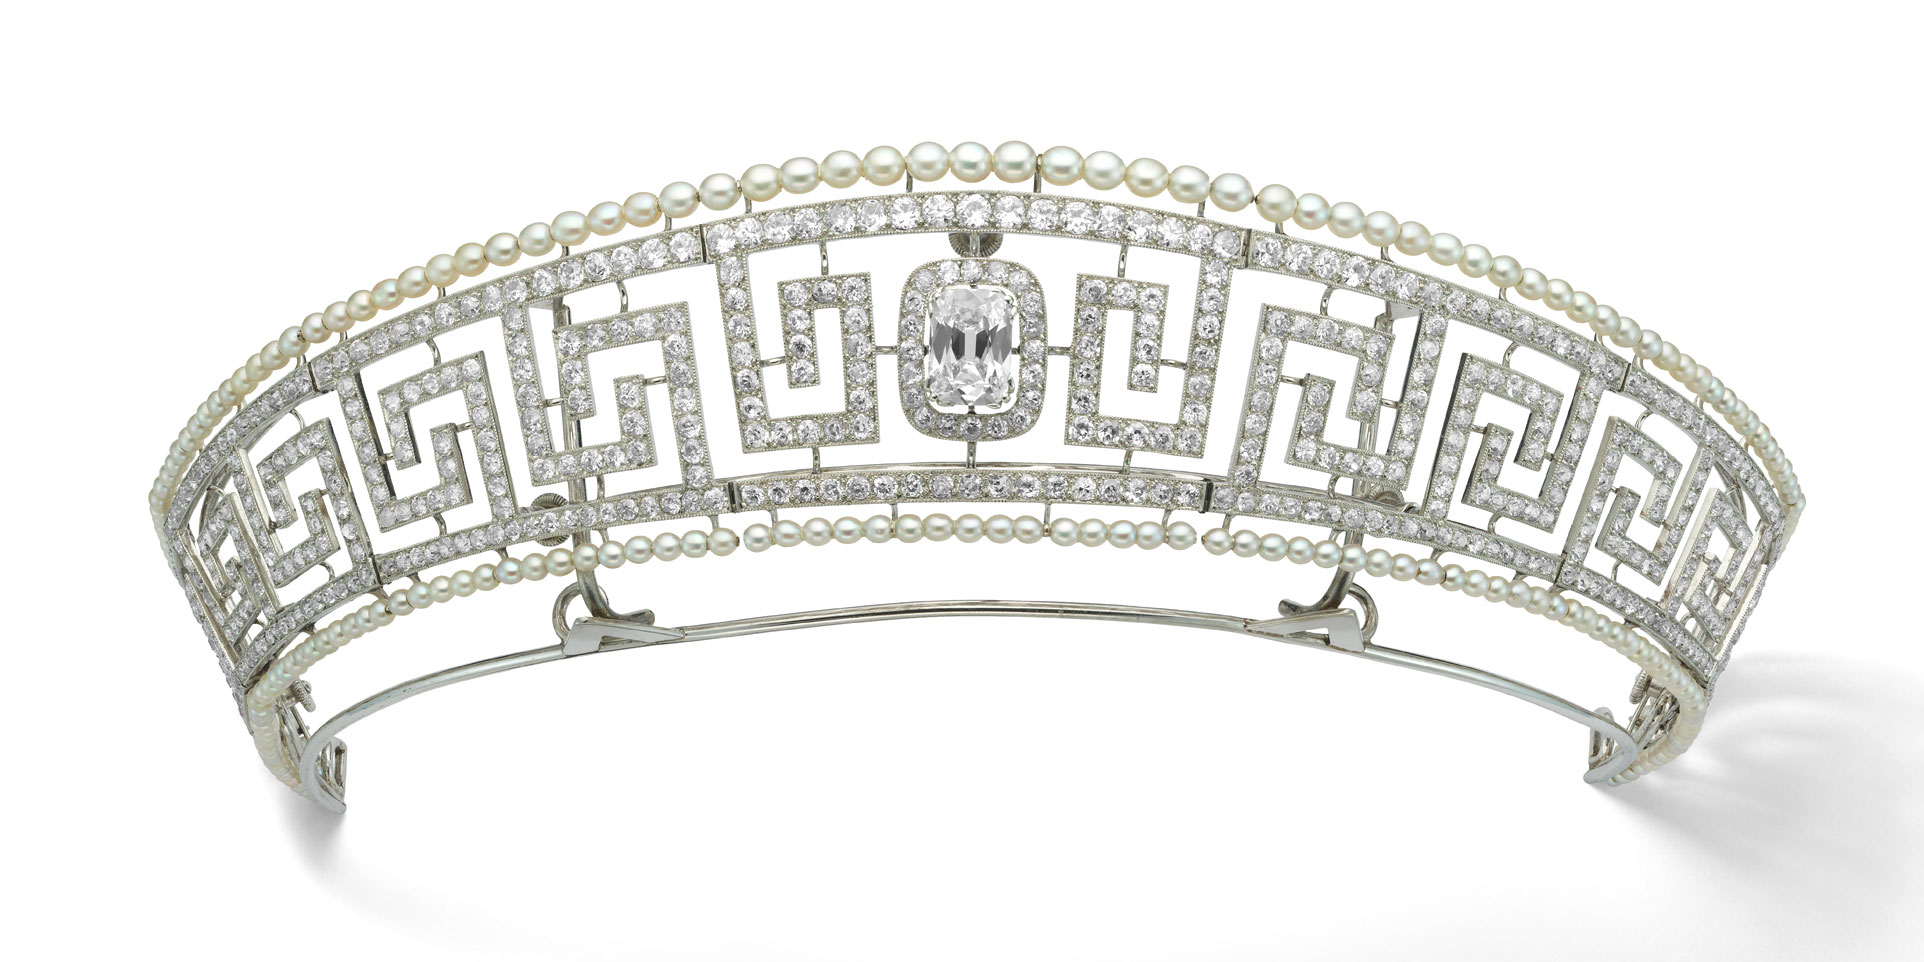 Diamond and pearl tiara saved from the Lusitania Cartier Paris 1909